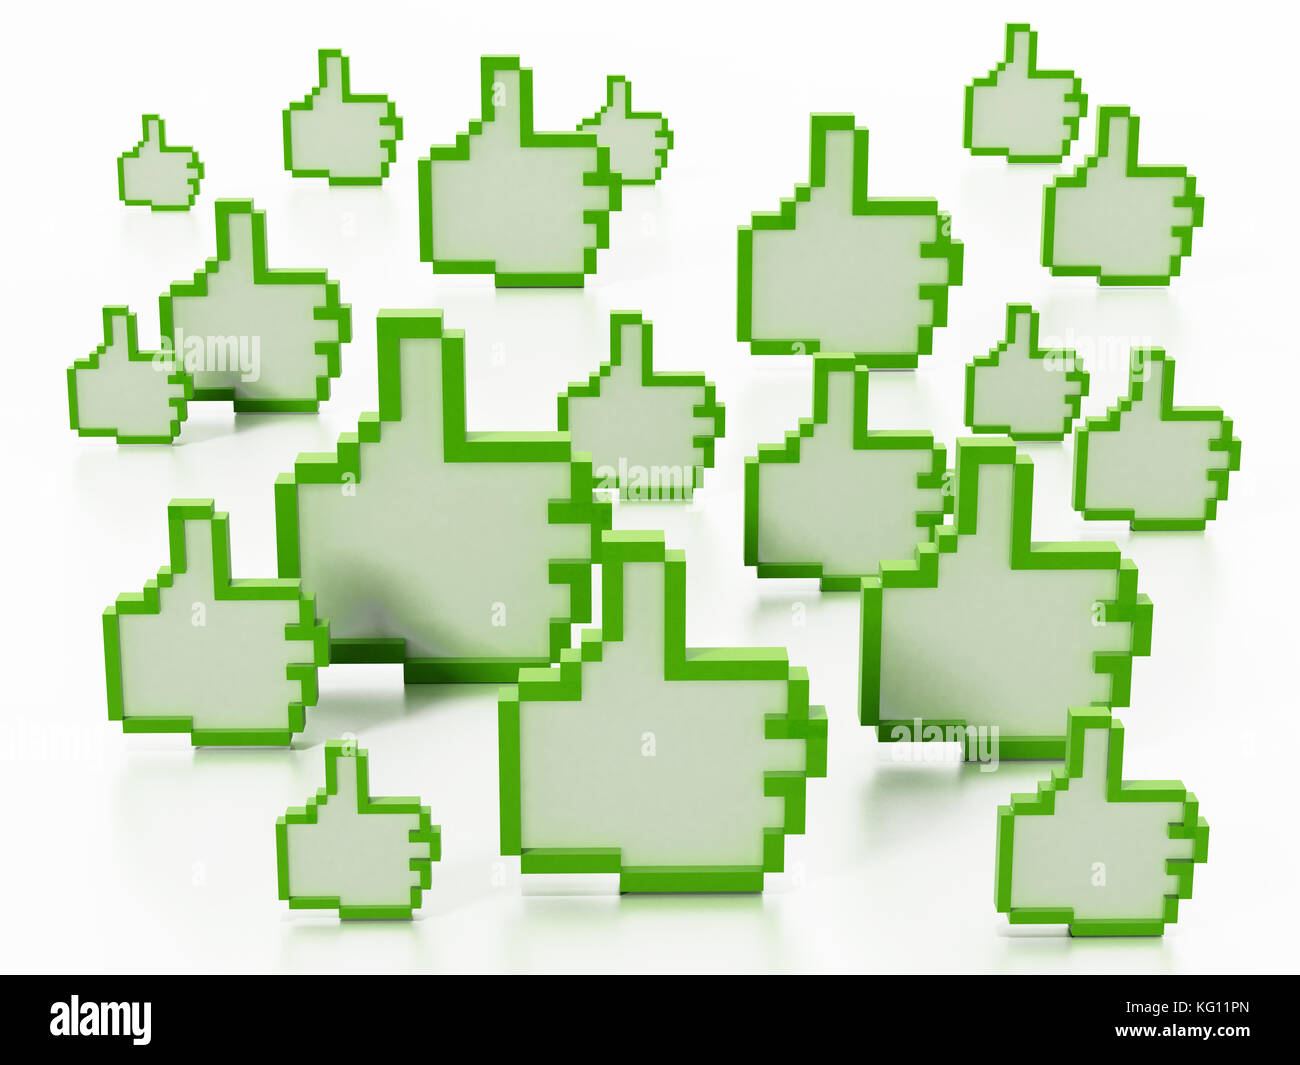 Thumbs up icons isolated on white background. 3D illustration. - Stock Image